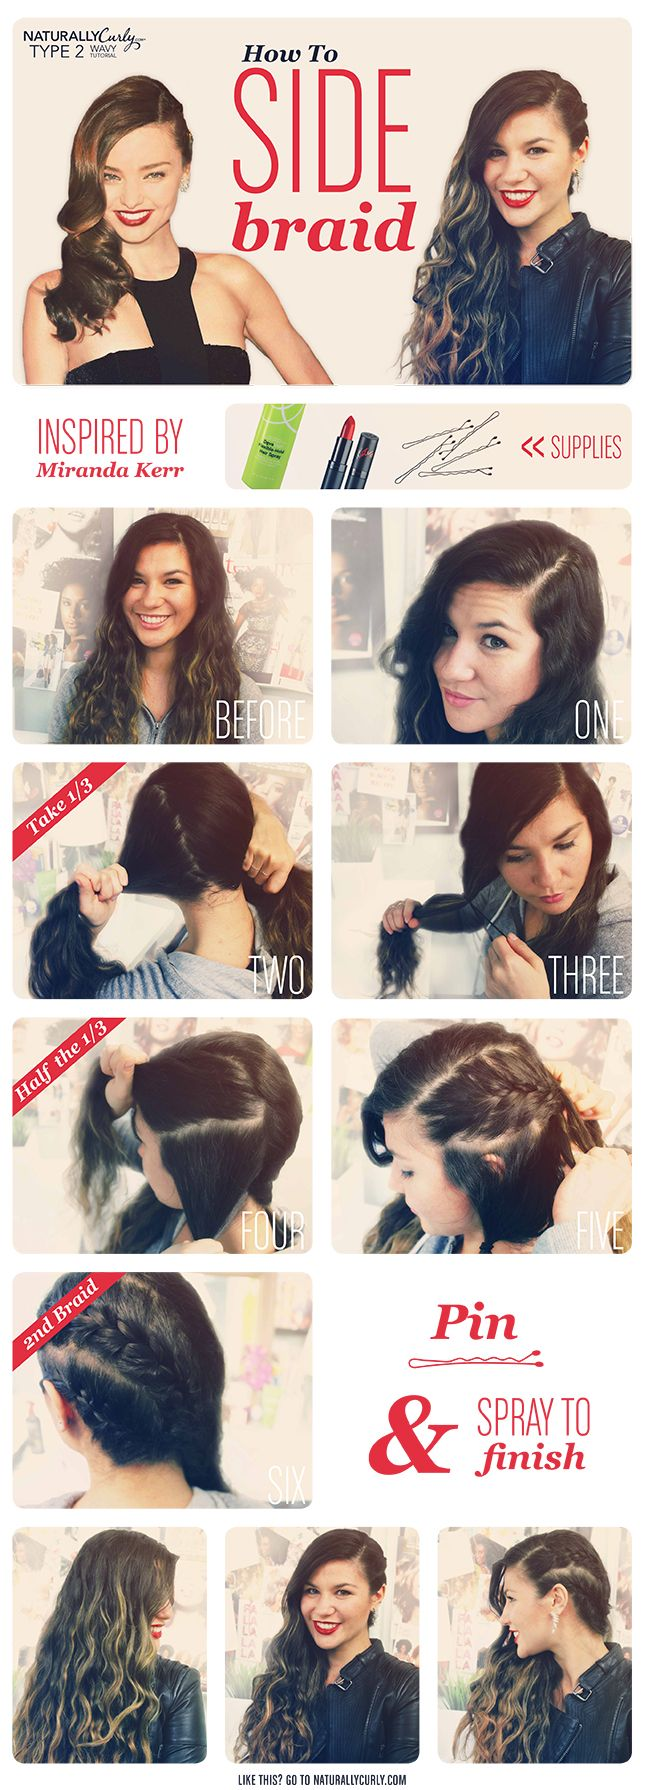 TUTORIAL | Miranda Kerr-Inspired Wavy Side Braid  Edgy and classy at the same time! Super simple :)